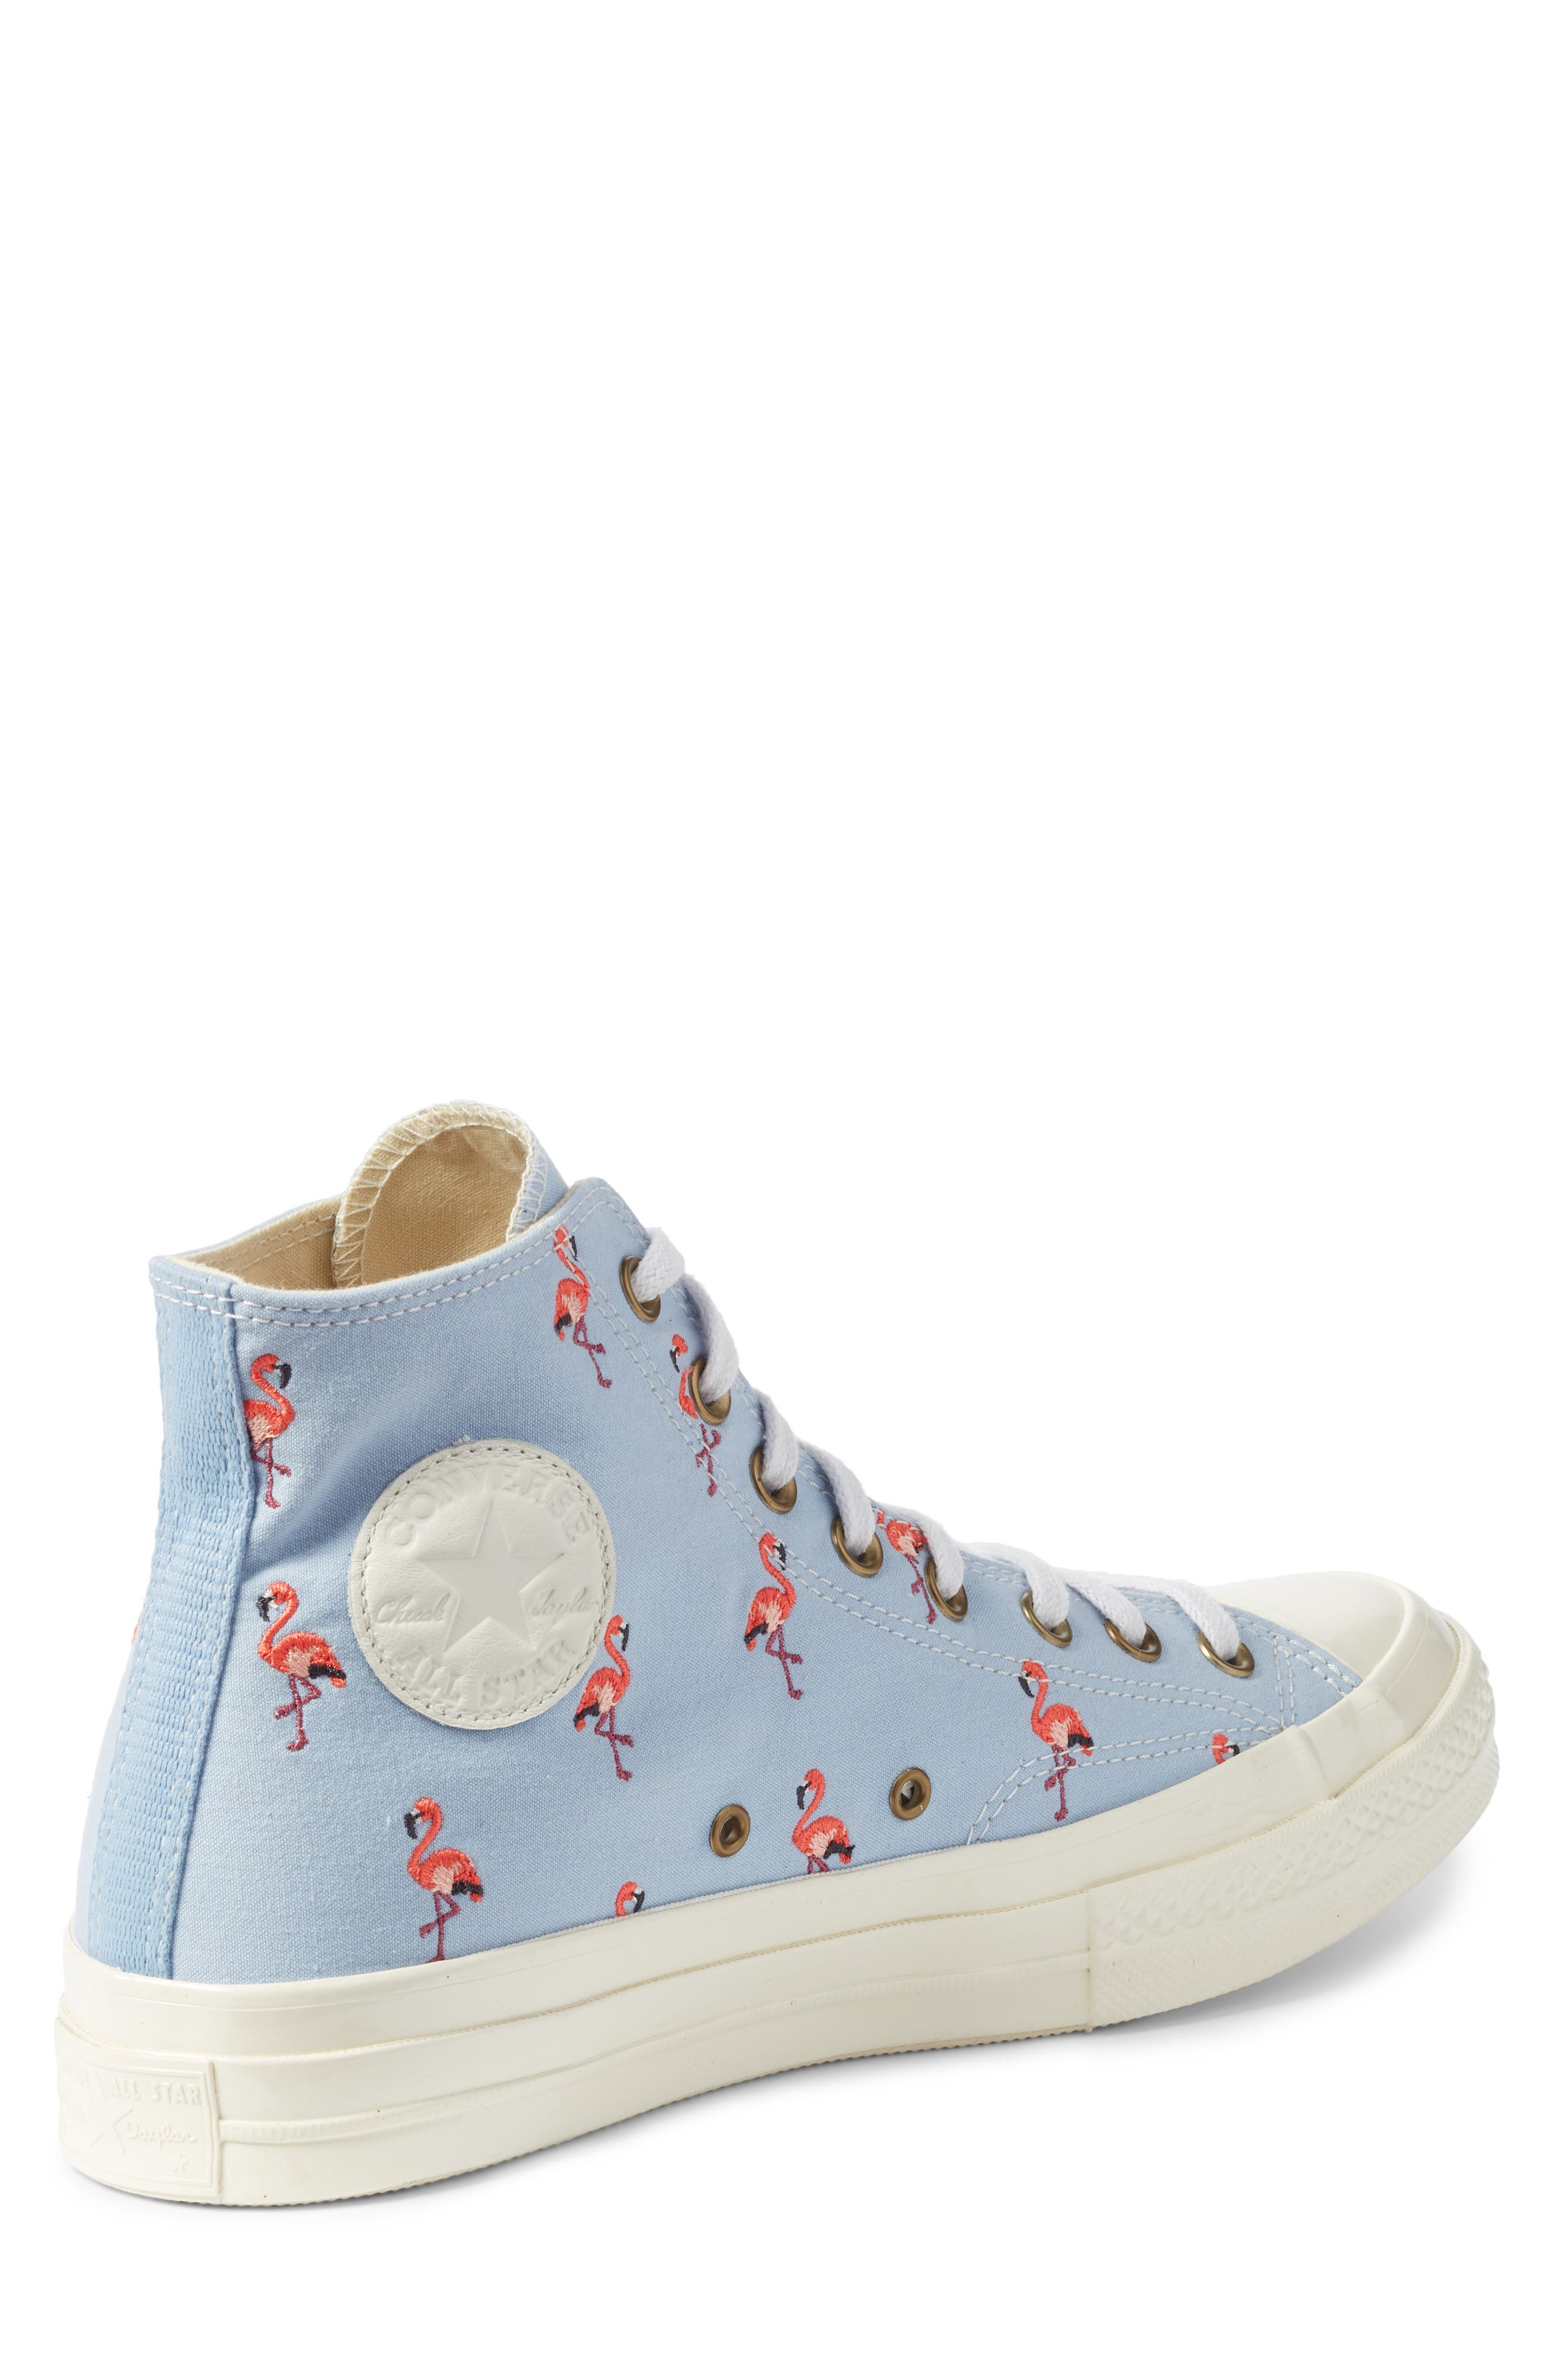 Chuck Taylor<sup>®</sup> All Star<sup>®</sup> Chuck 70 Flamingo Sneaker,                             Alternate thumbnail 2, color,                             457